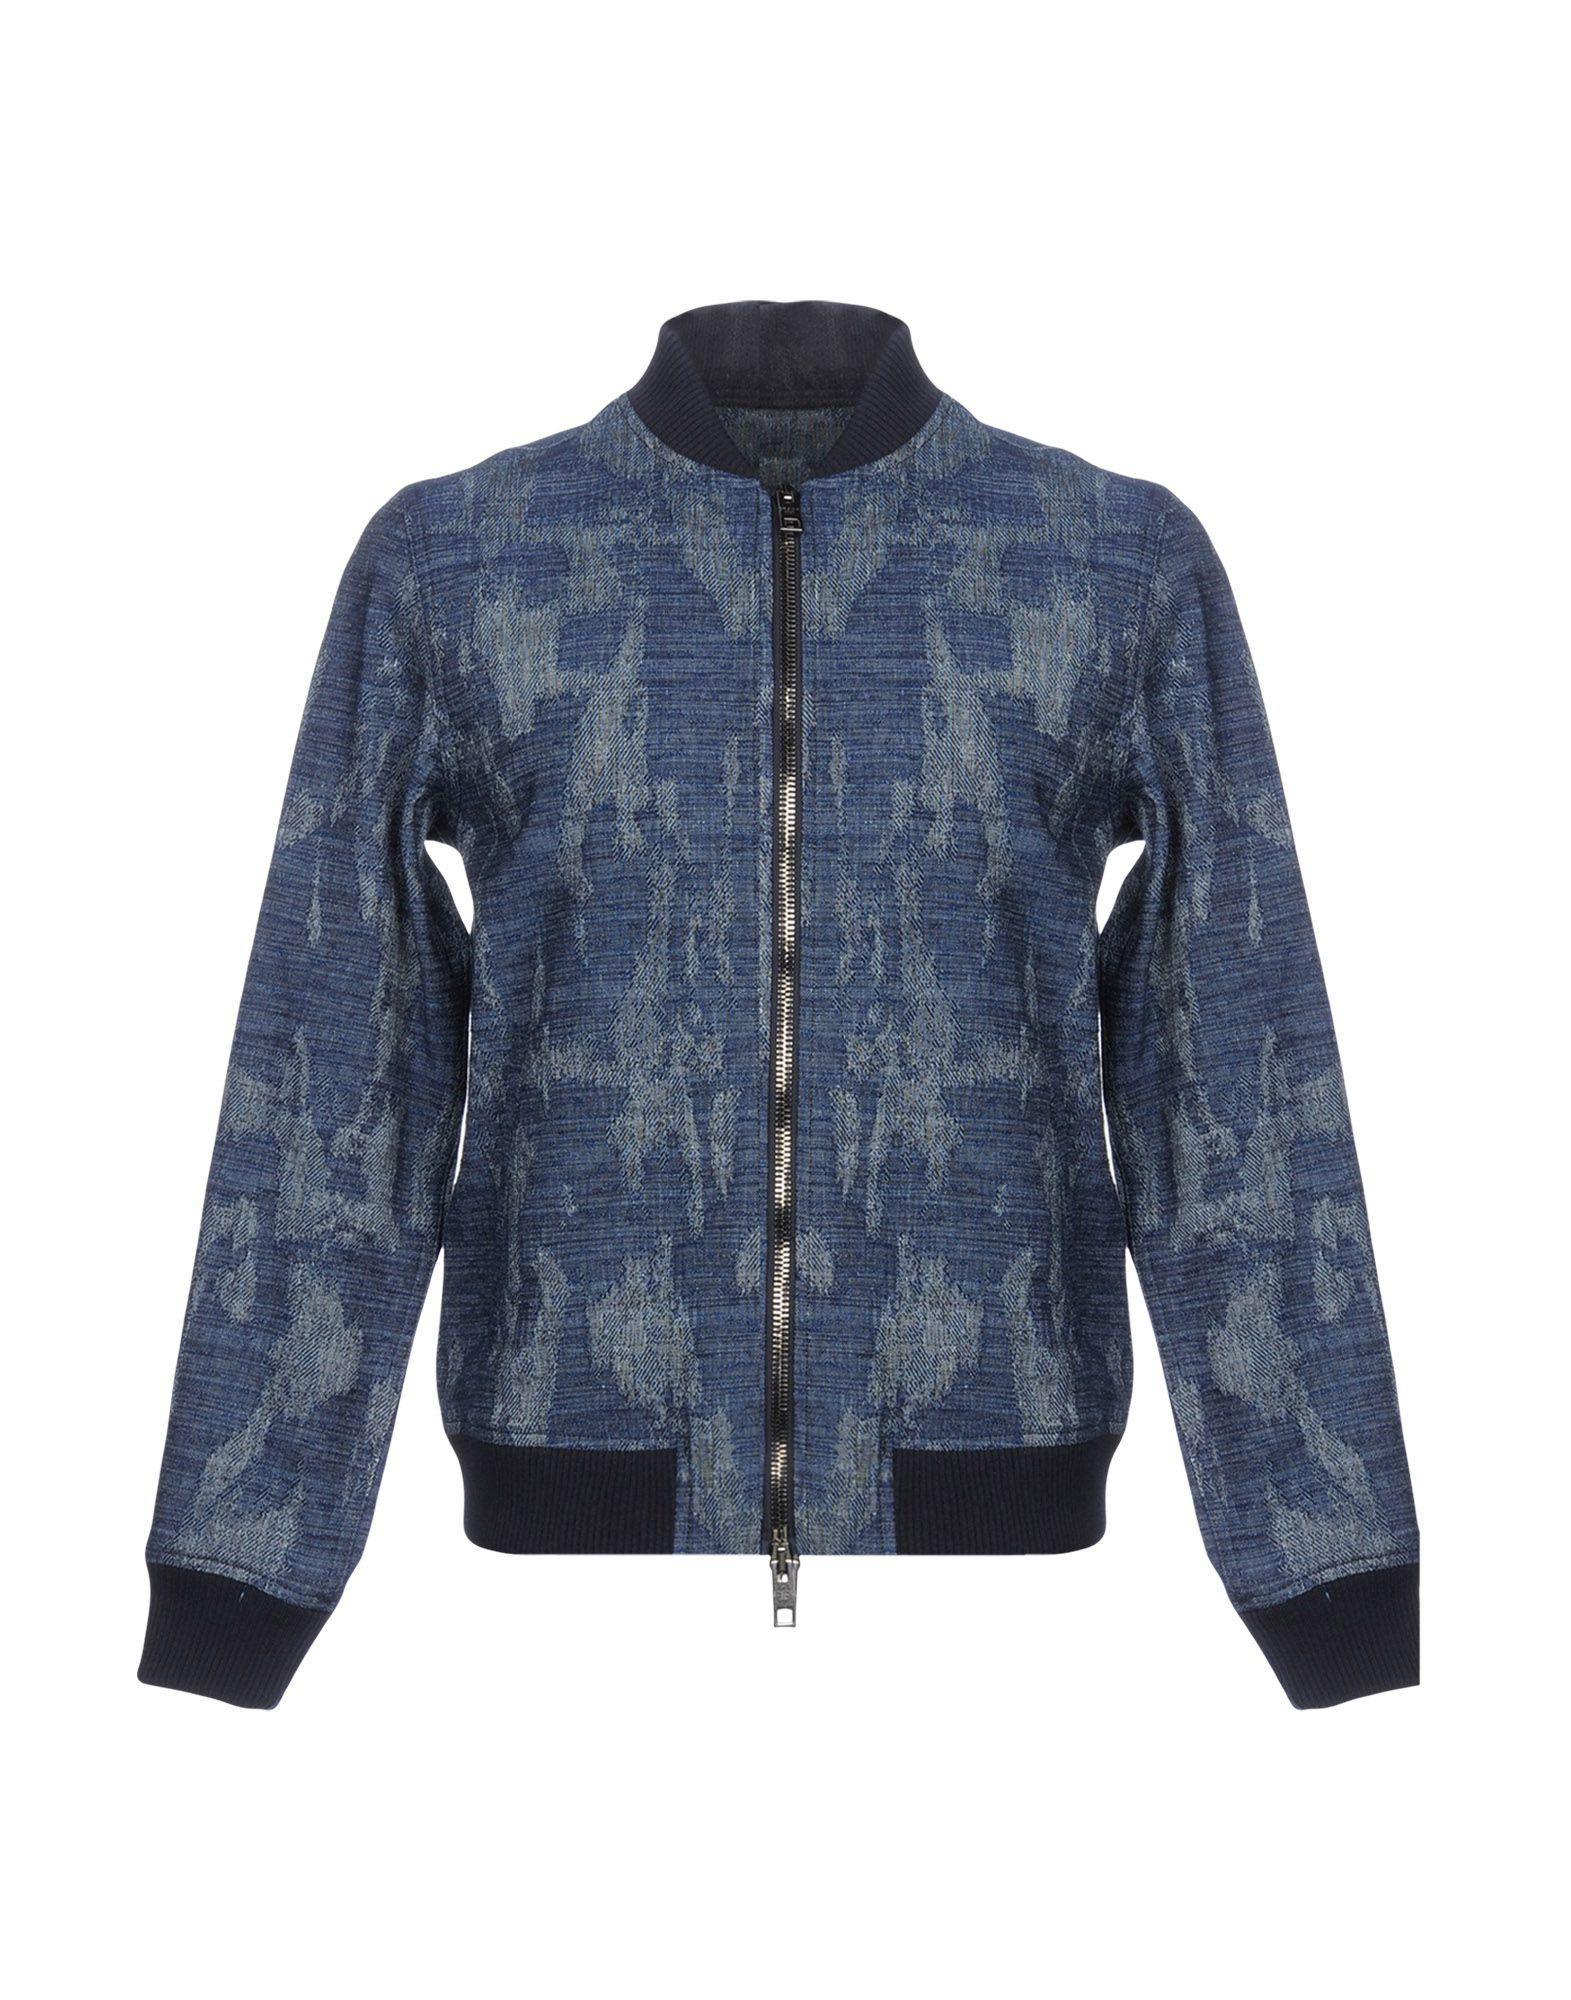 Ports 1961 Bomber In Blue